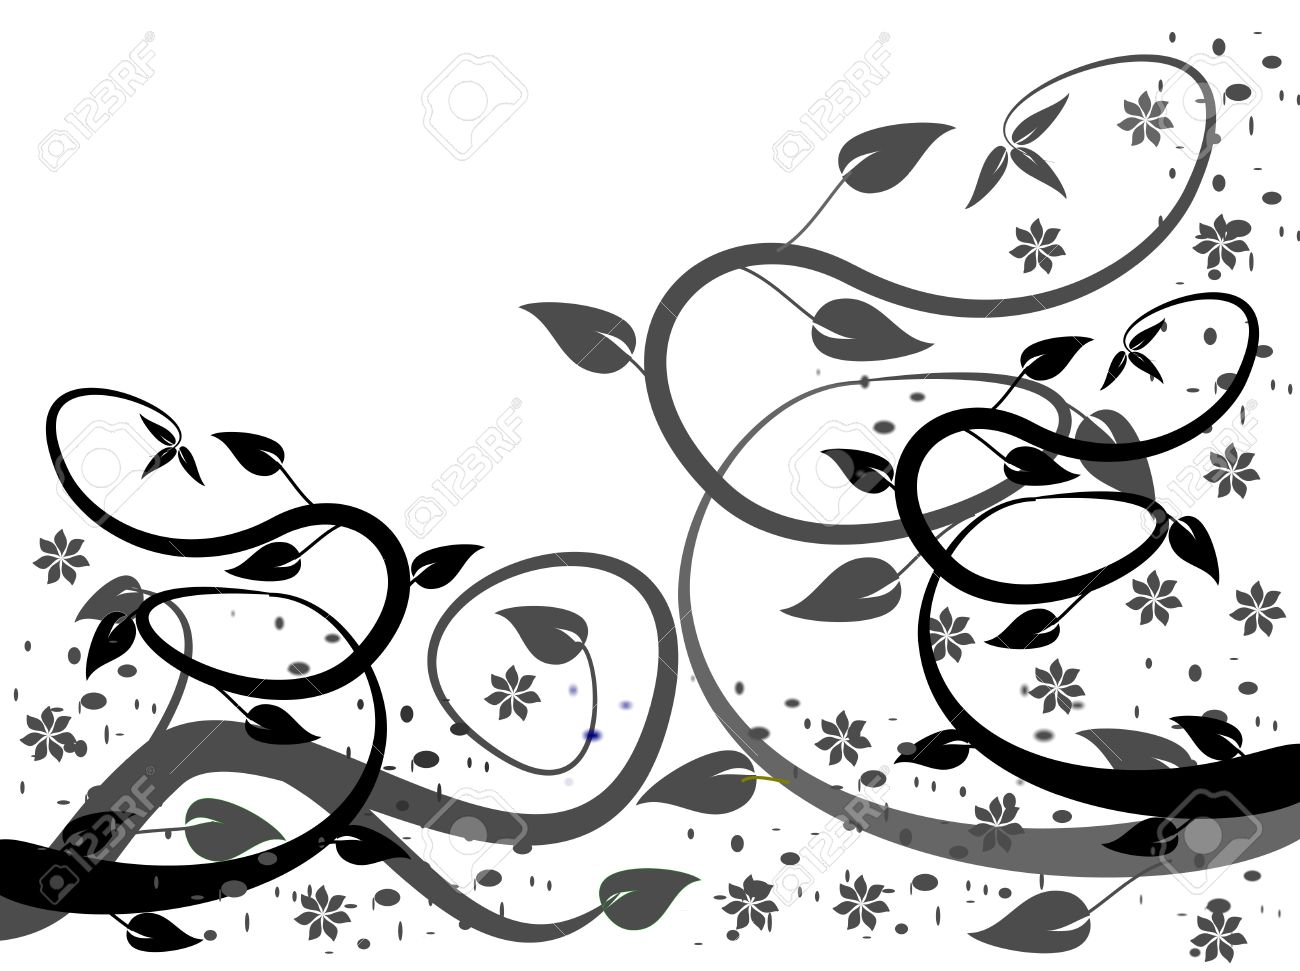 A Black And White Abstract Floral Vector Design With Winding.